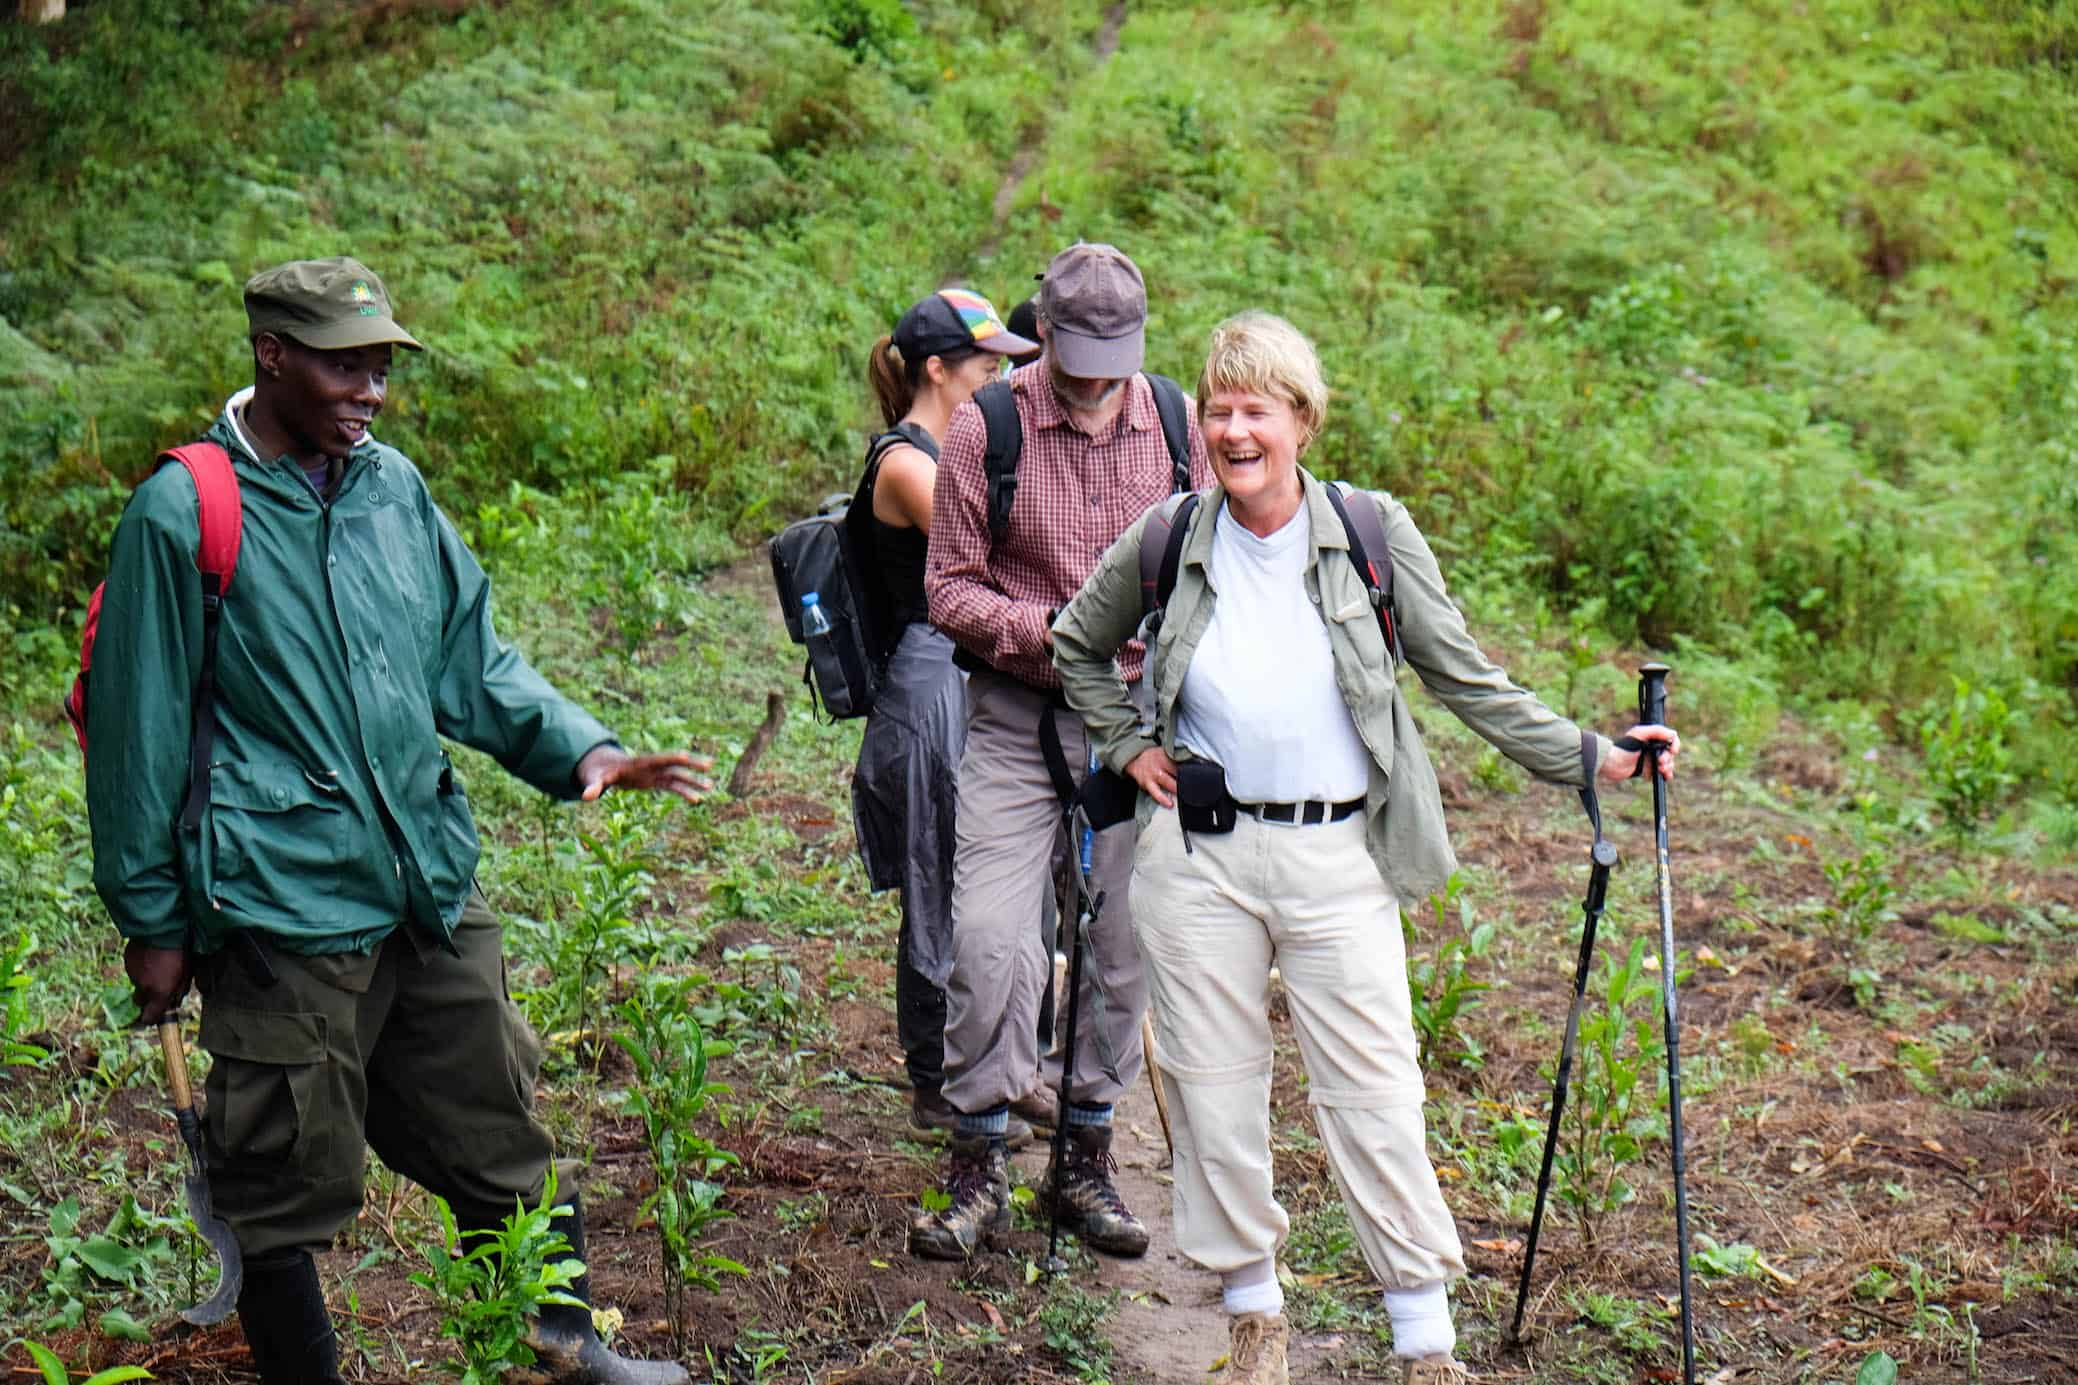 Gorilla Trekking Group With Guides